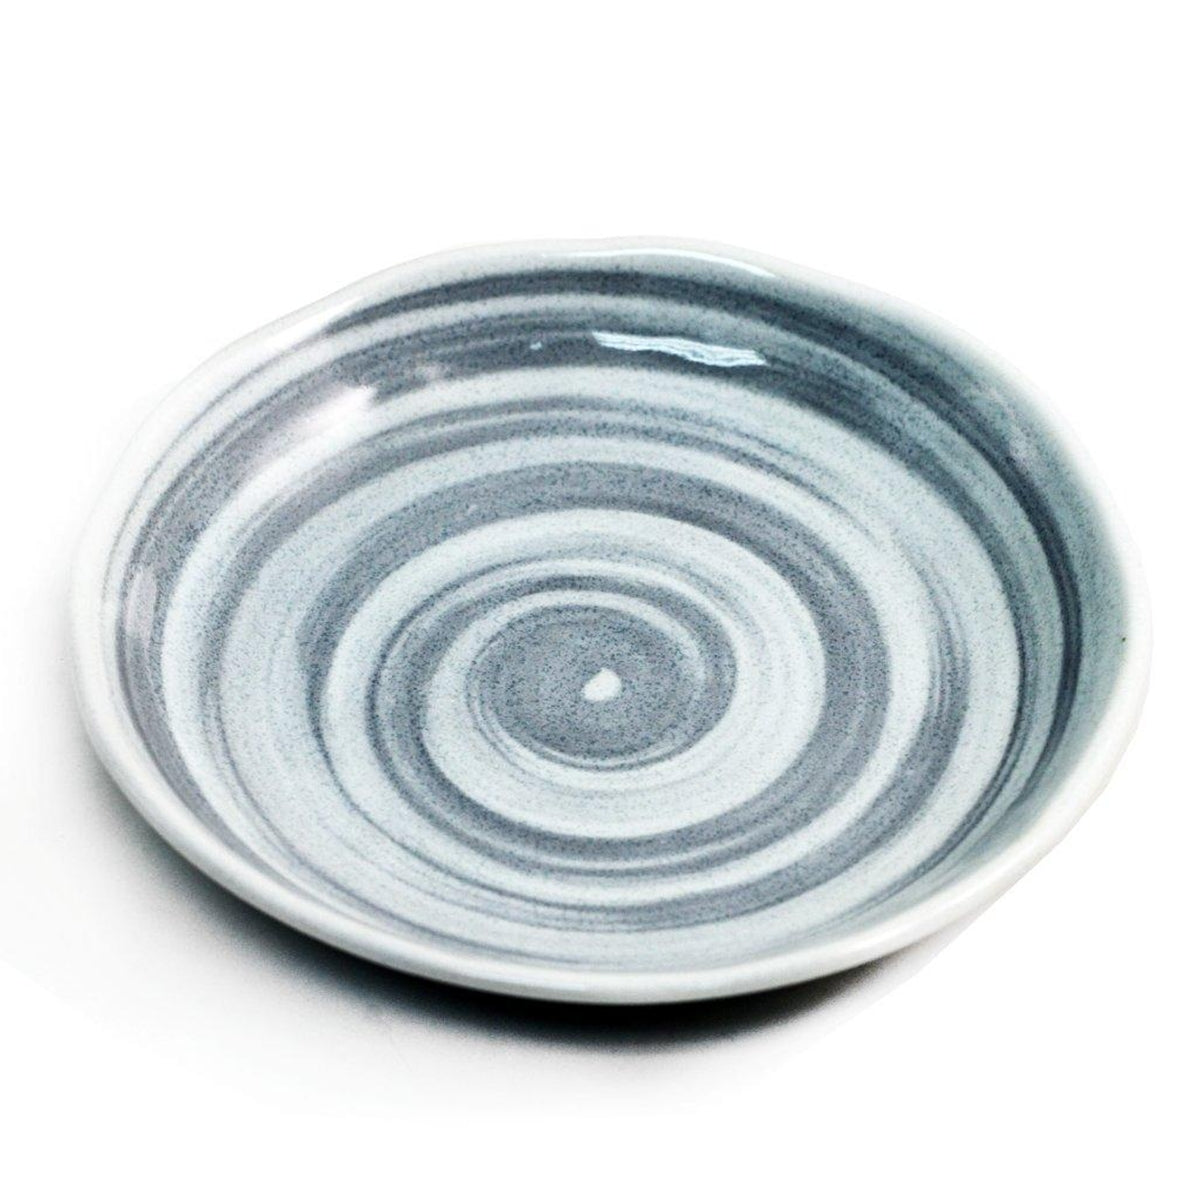 "Gray Spiral Plate 6.65"" dia"